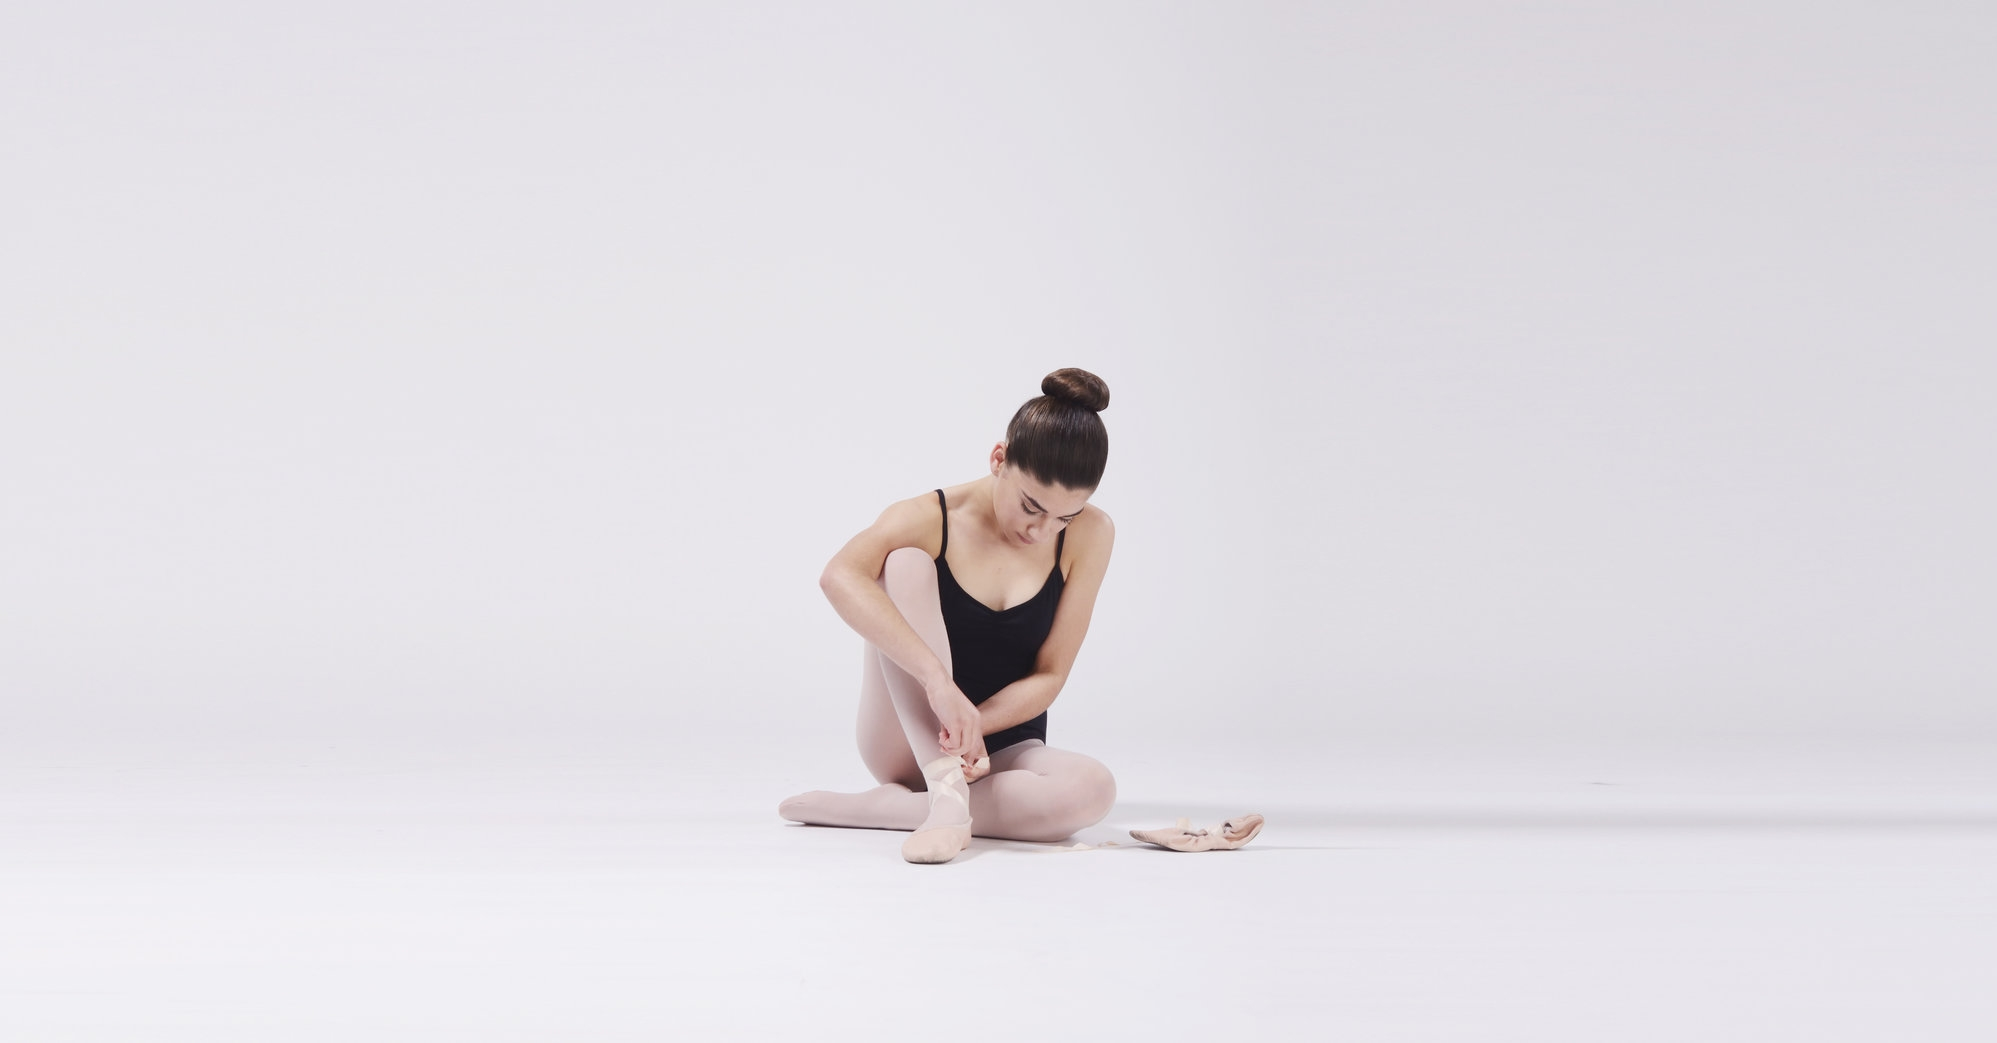 - Open, Stretch, pointe